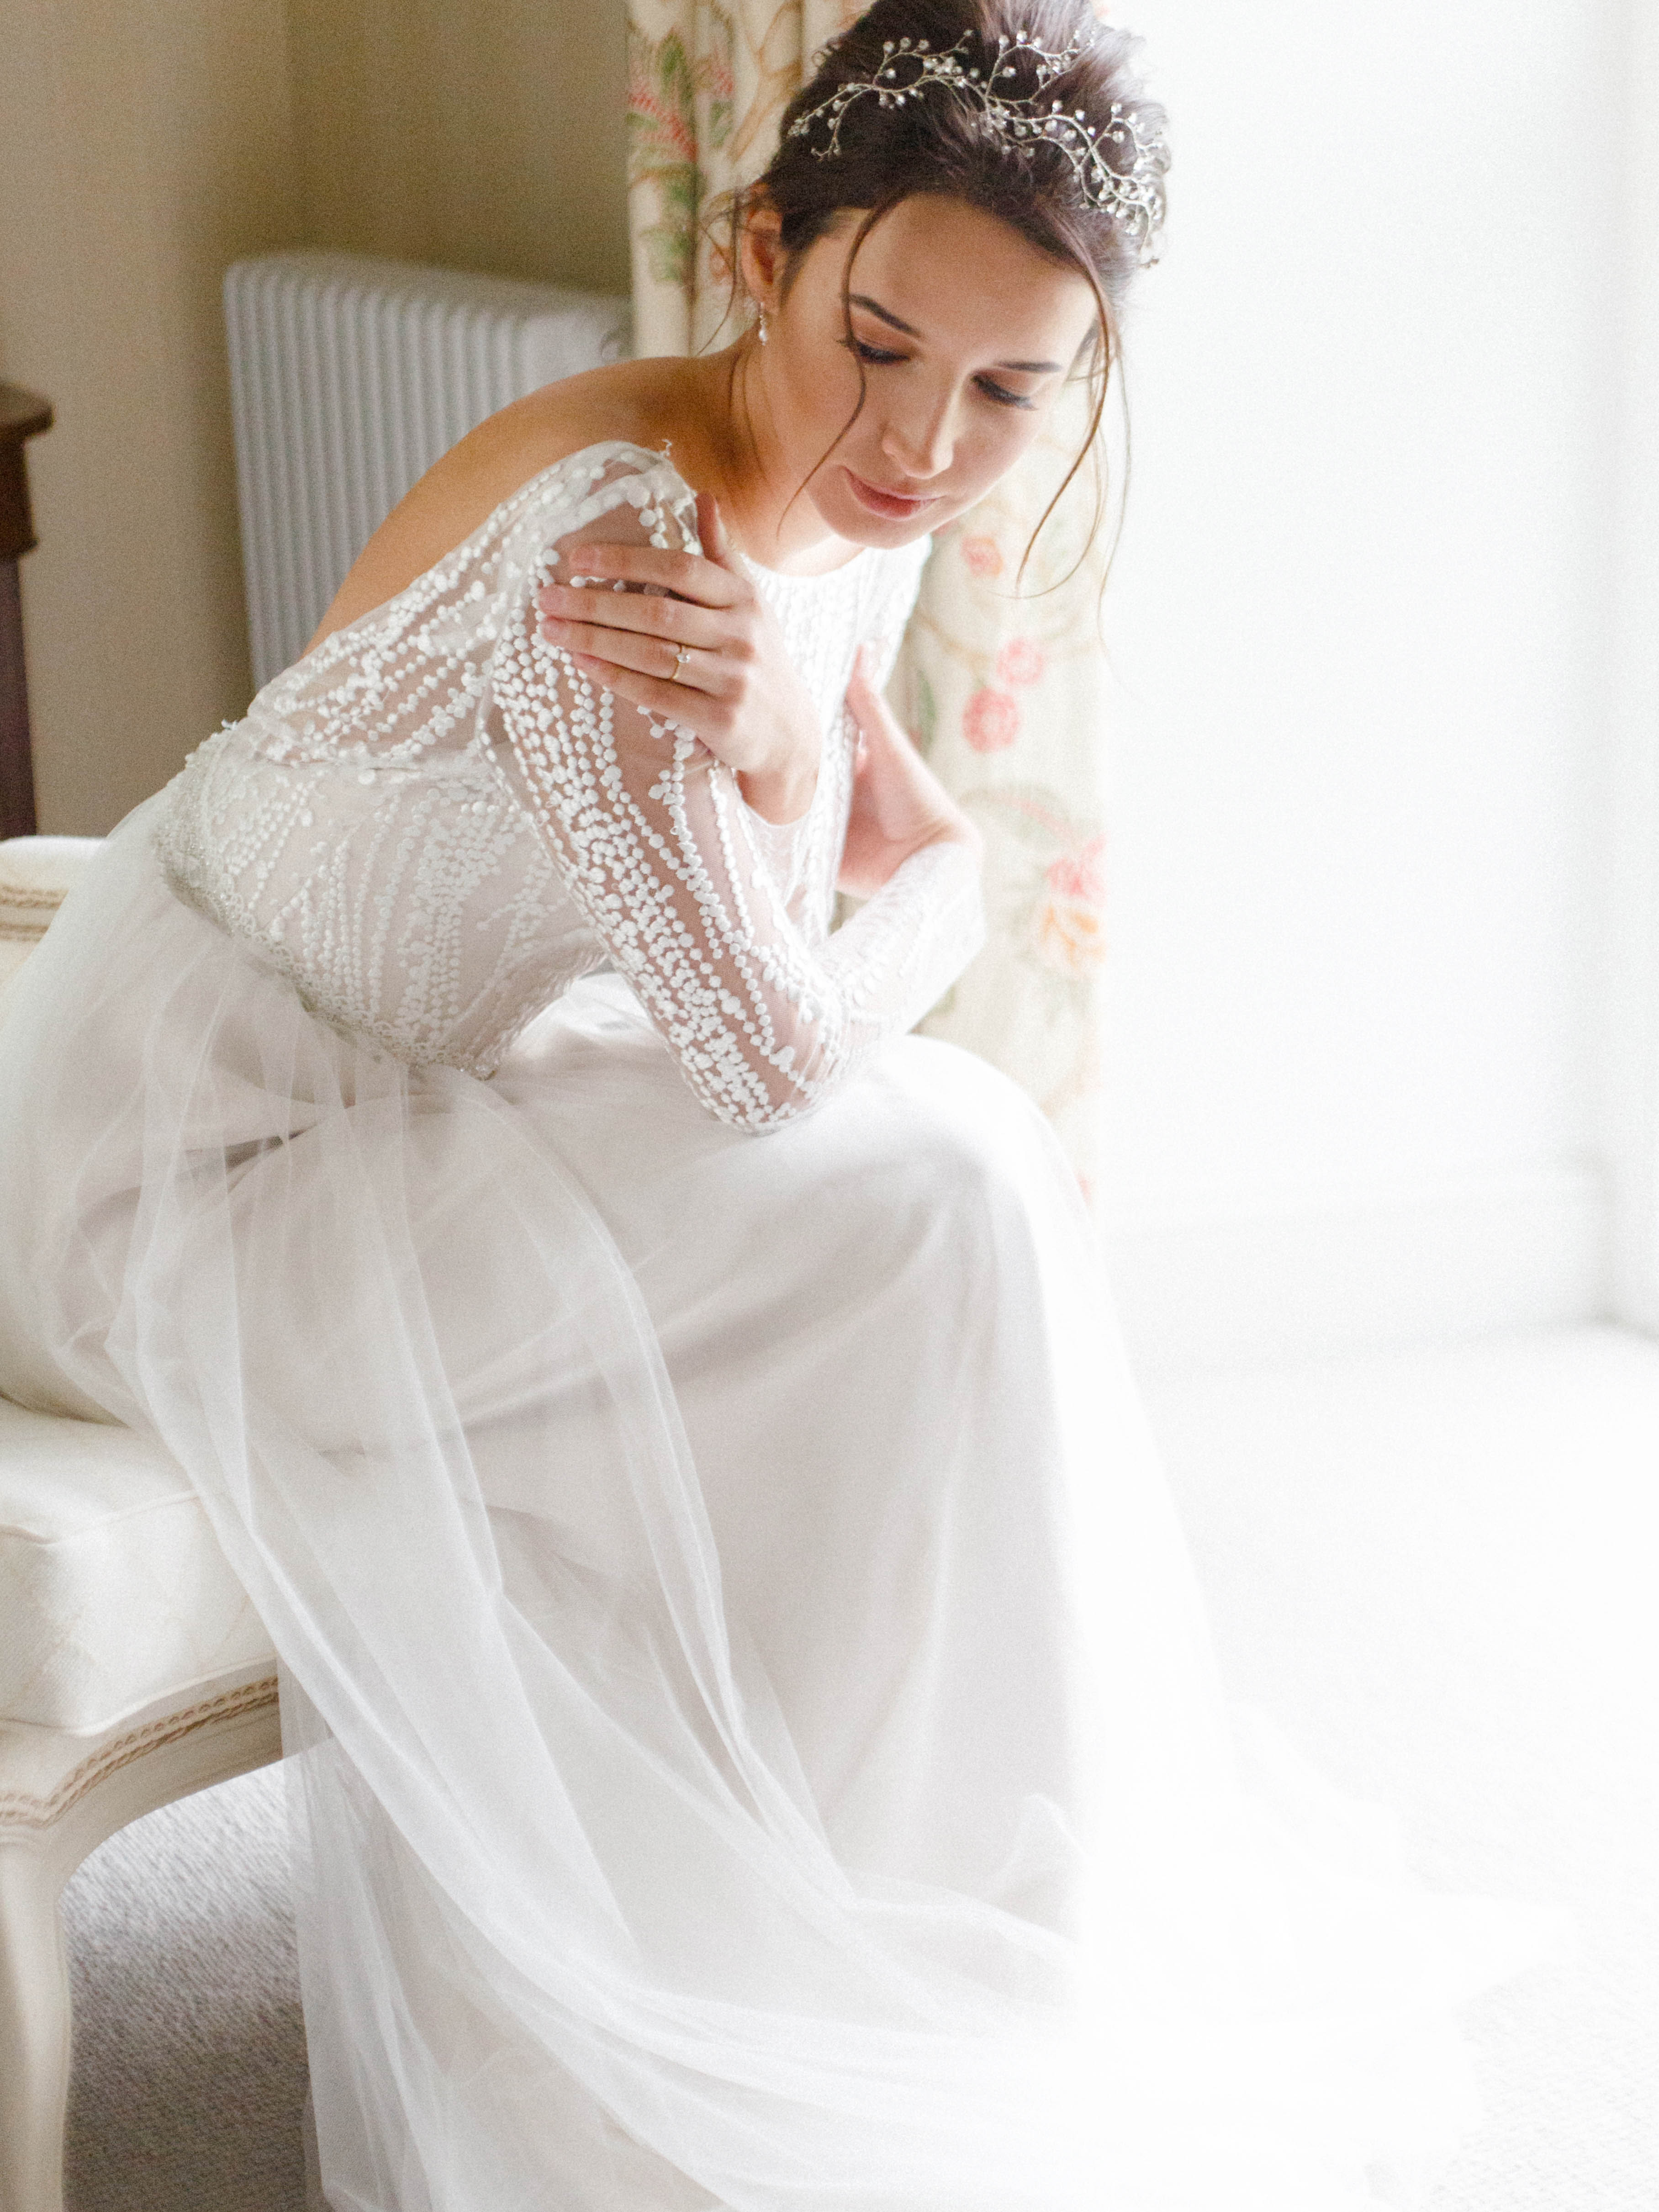 gorgeous-soft-wedding-makeup-hair-and-bridal-gown-in-natural-light-London